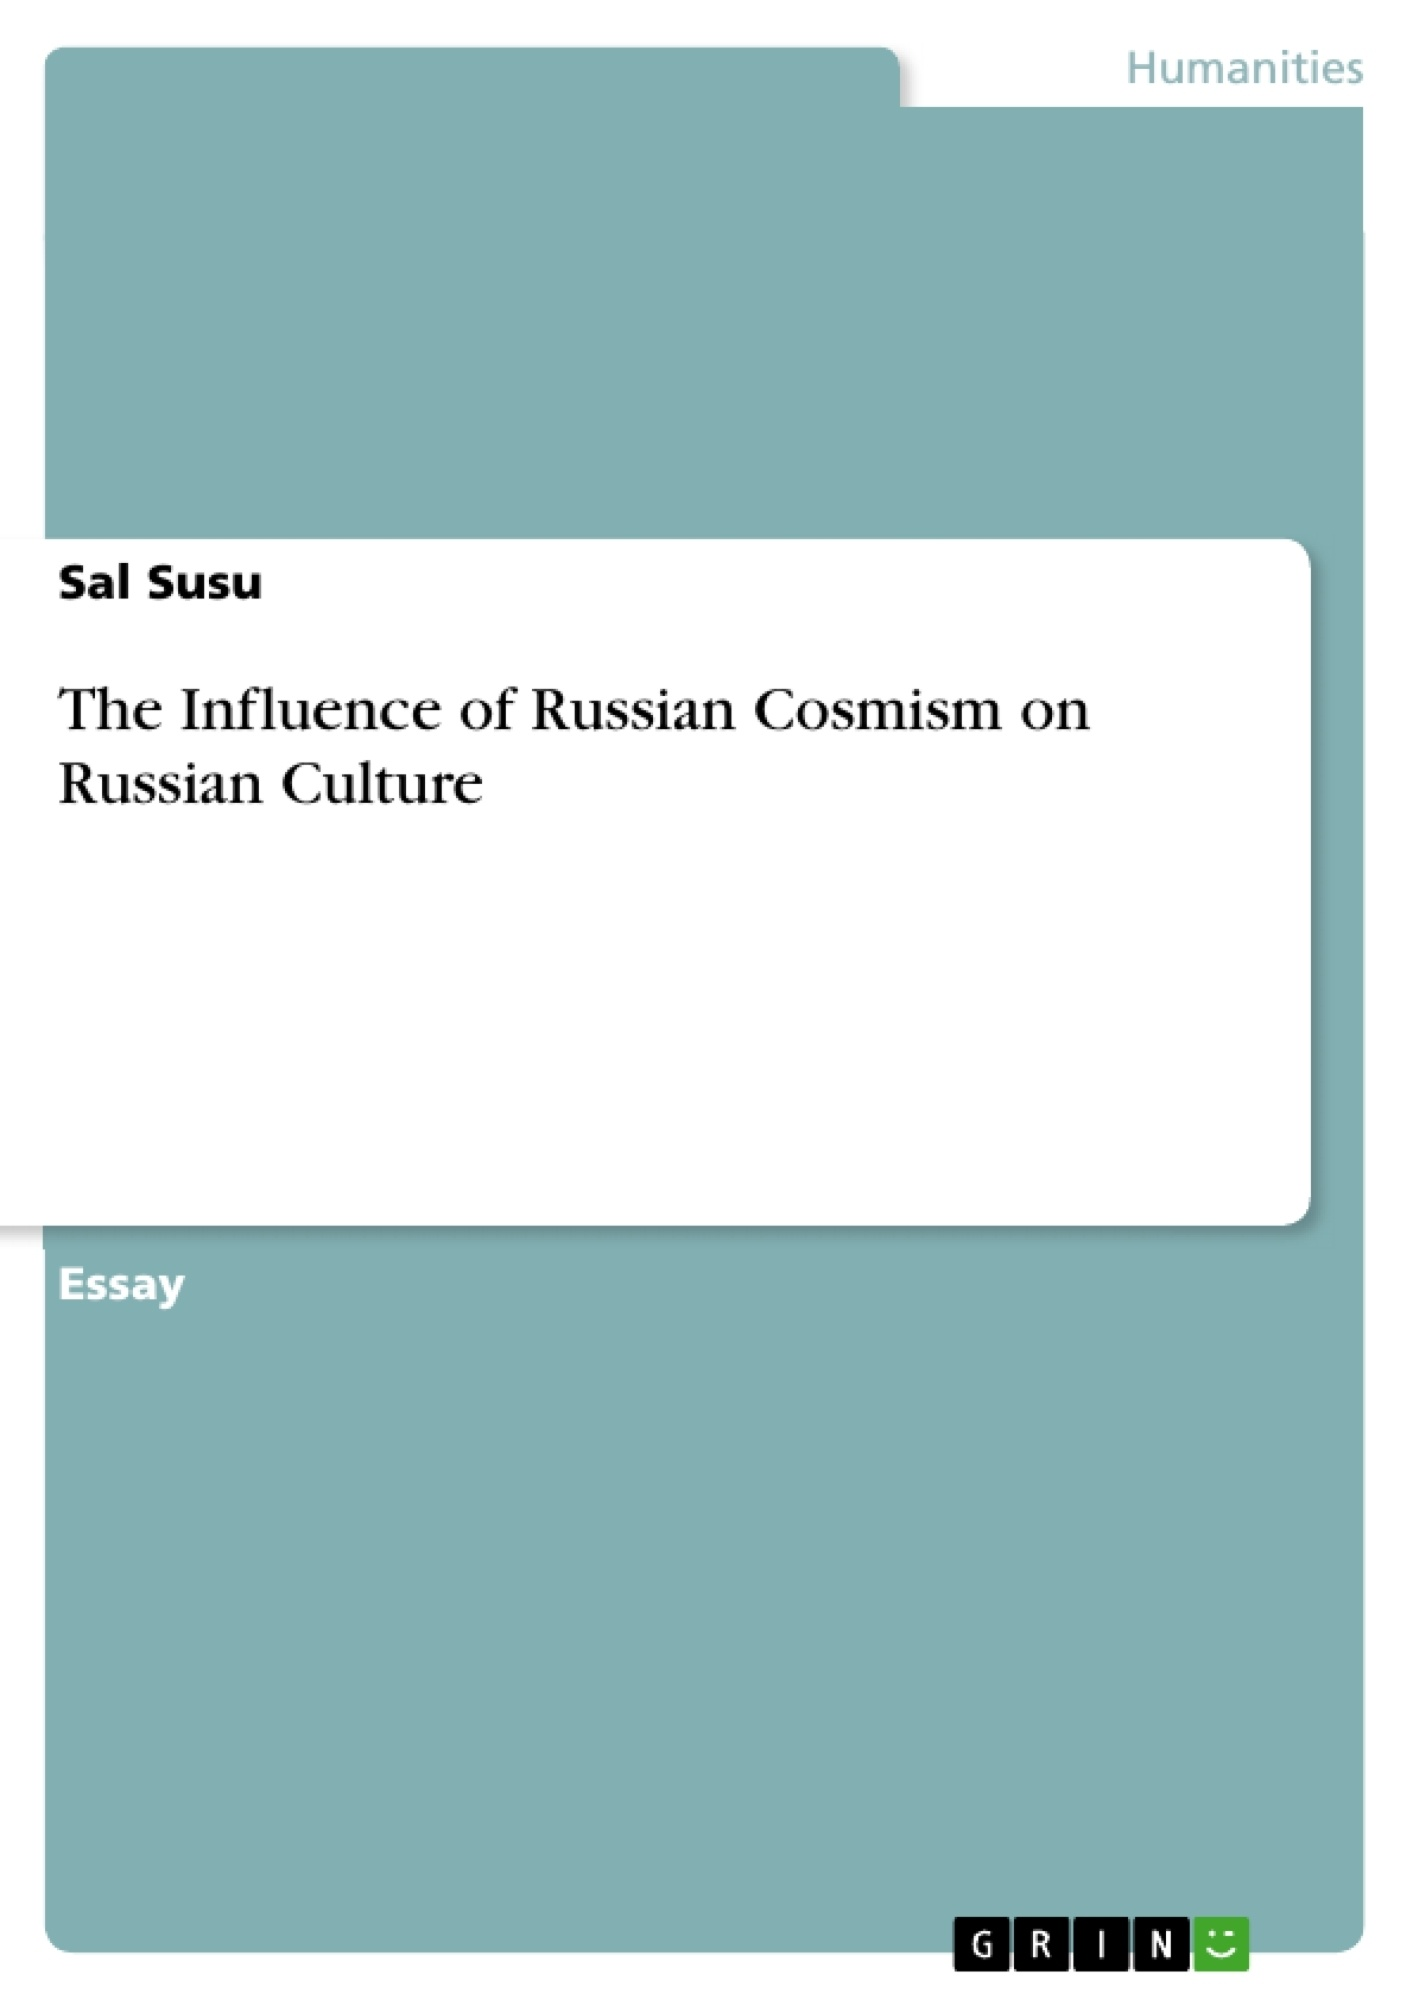 Title: The Influence of Russian Cosmism on Russian Culture